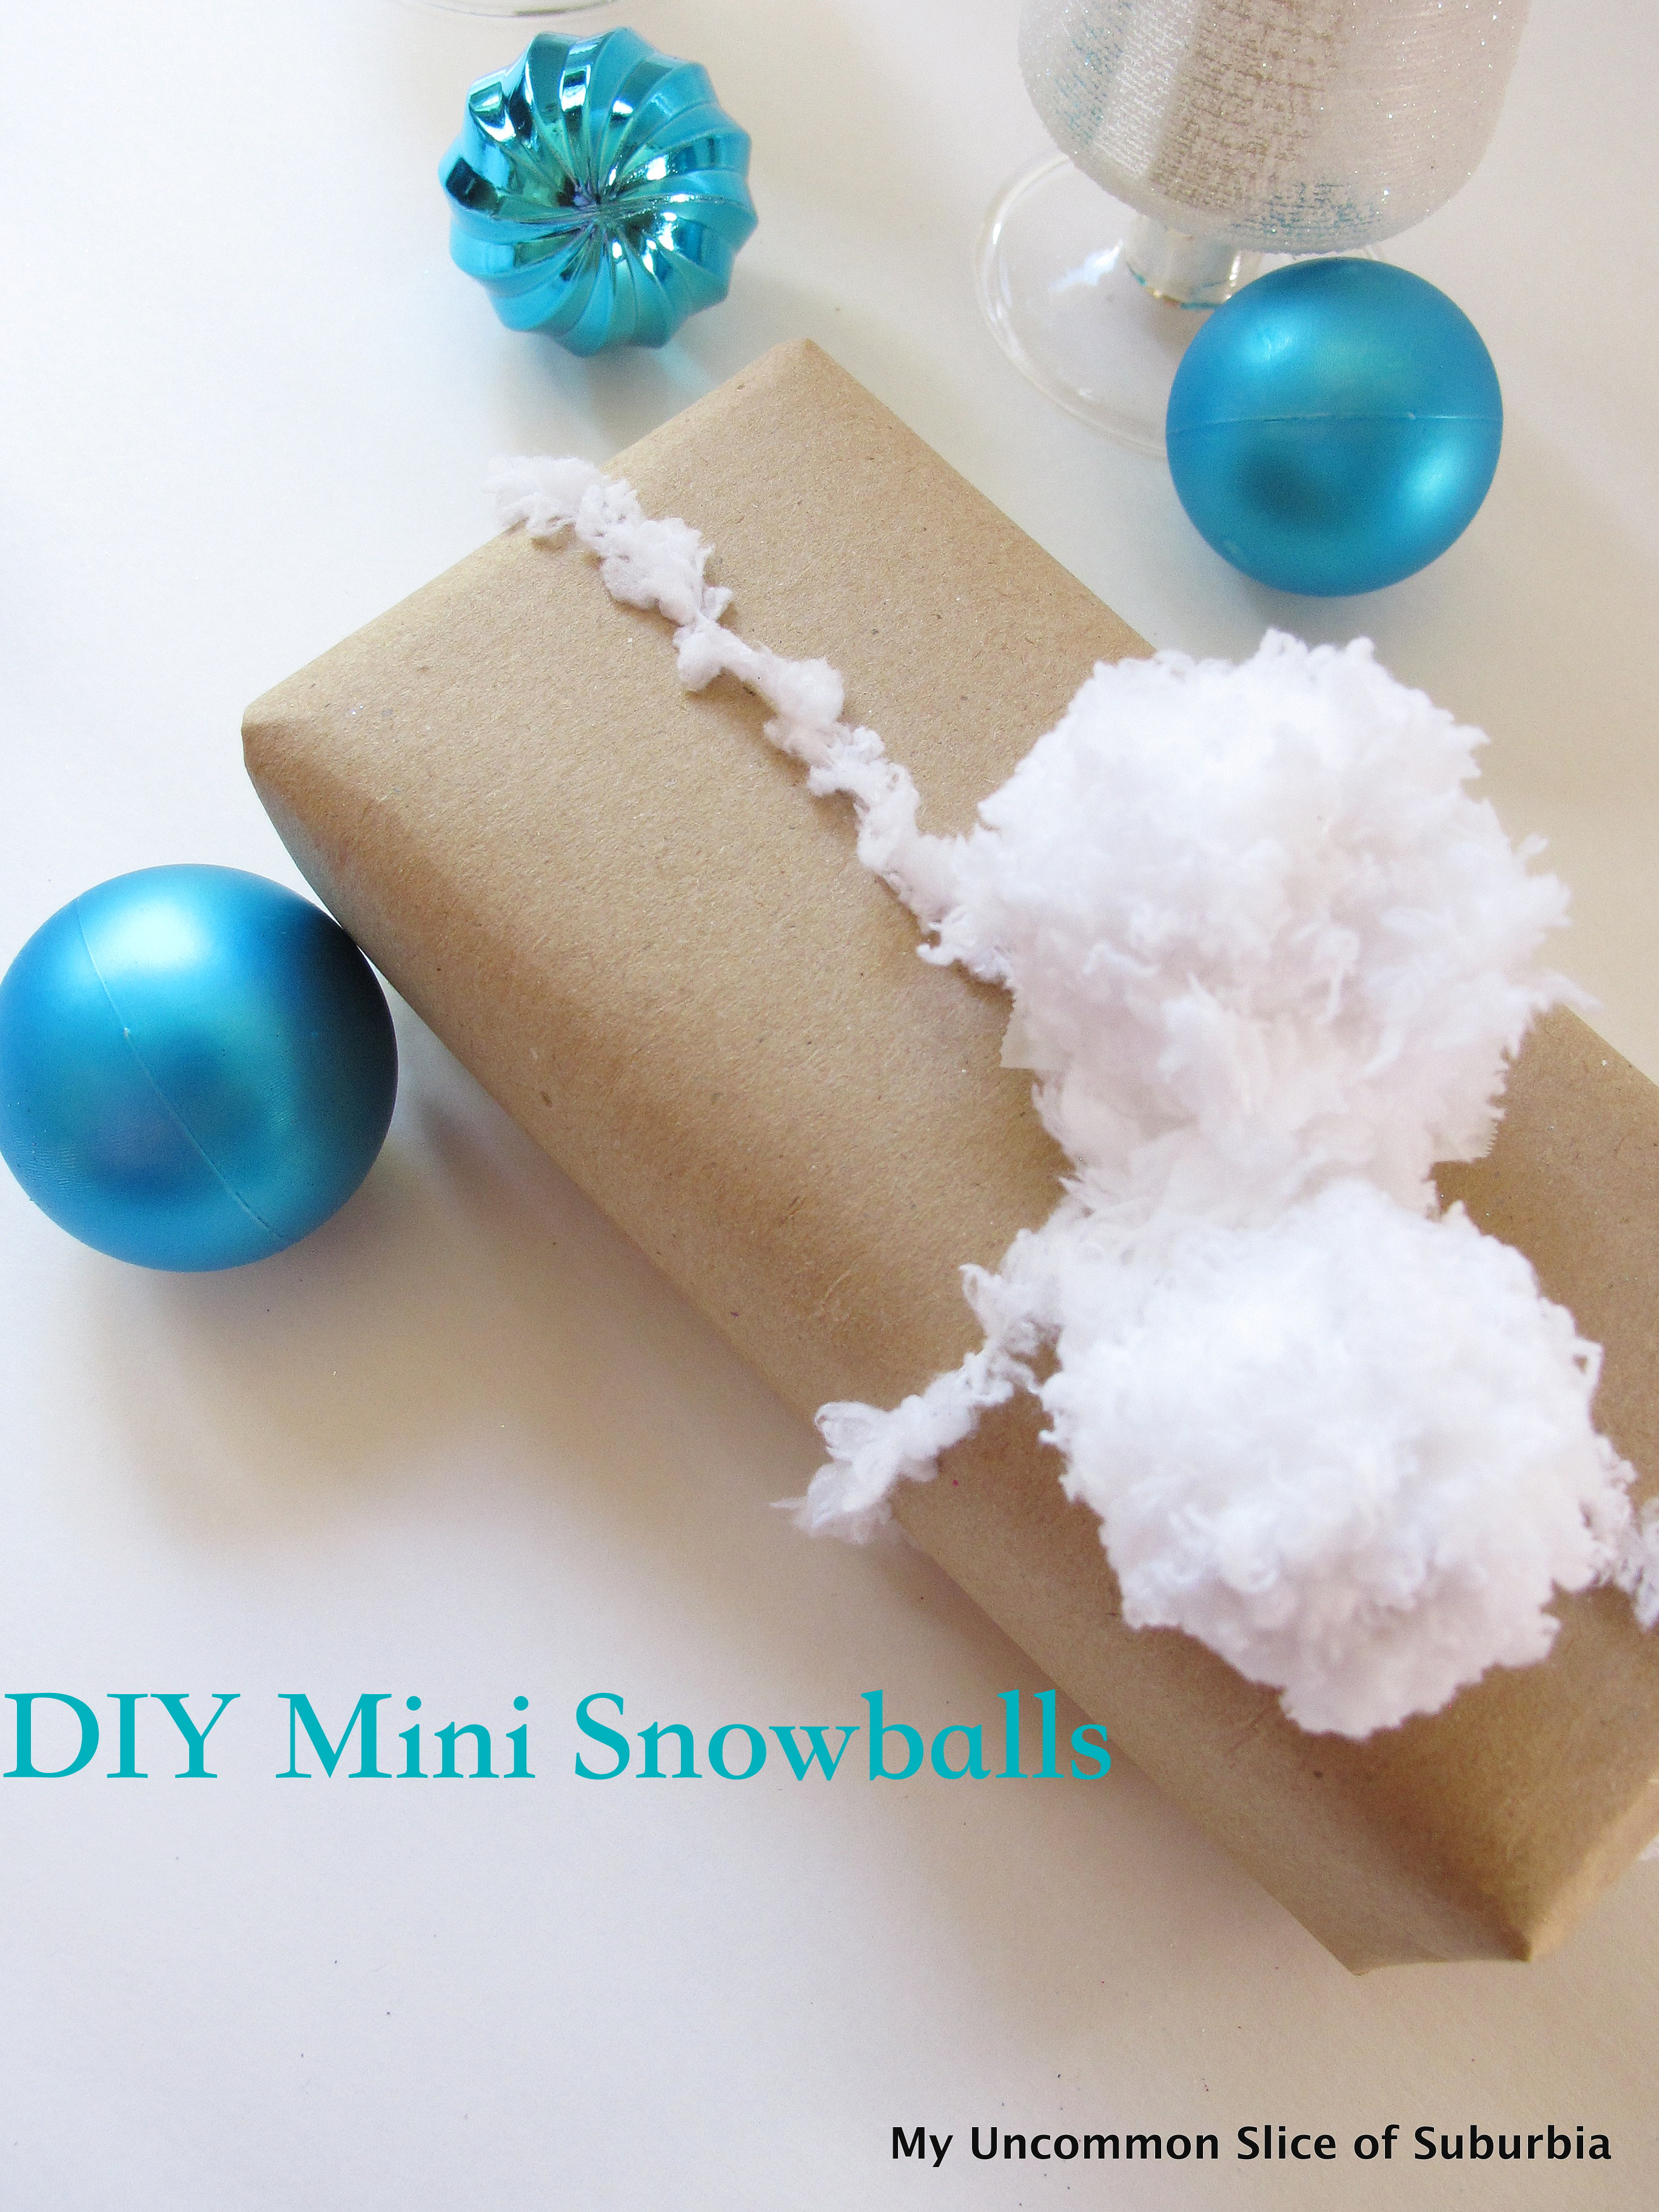 DIY Mini Snowballs